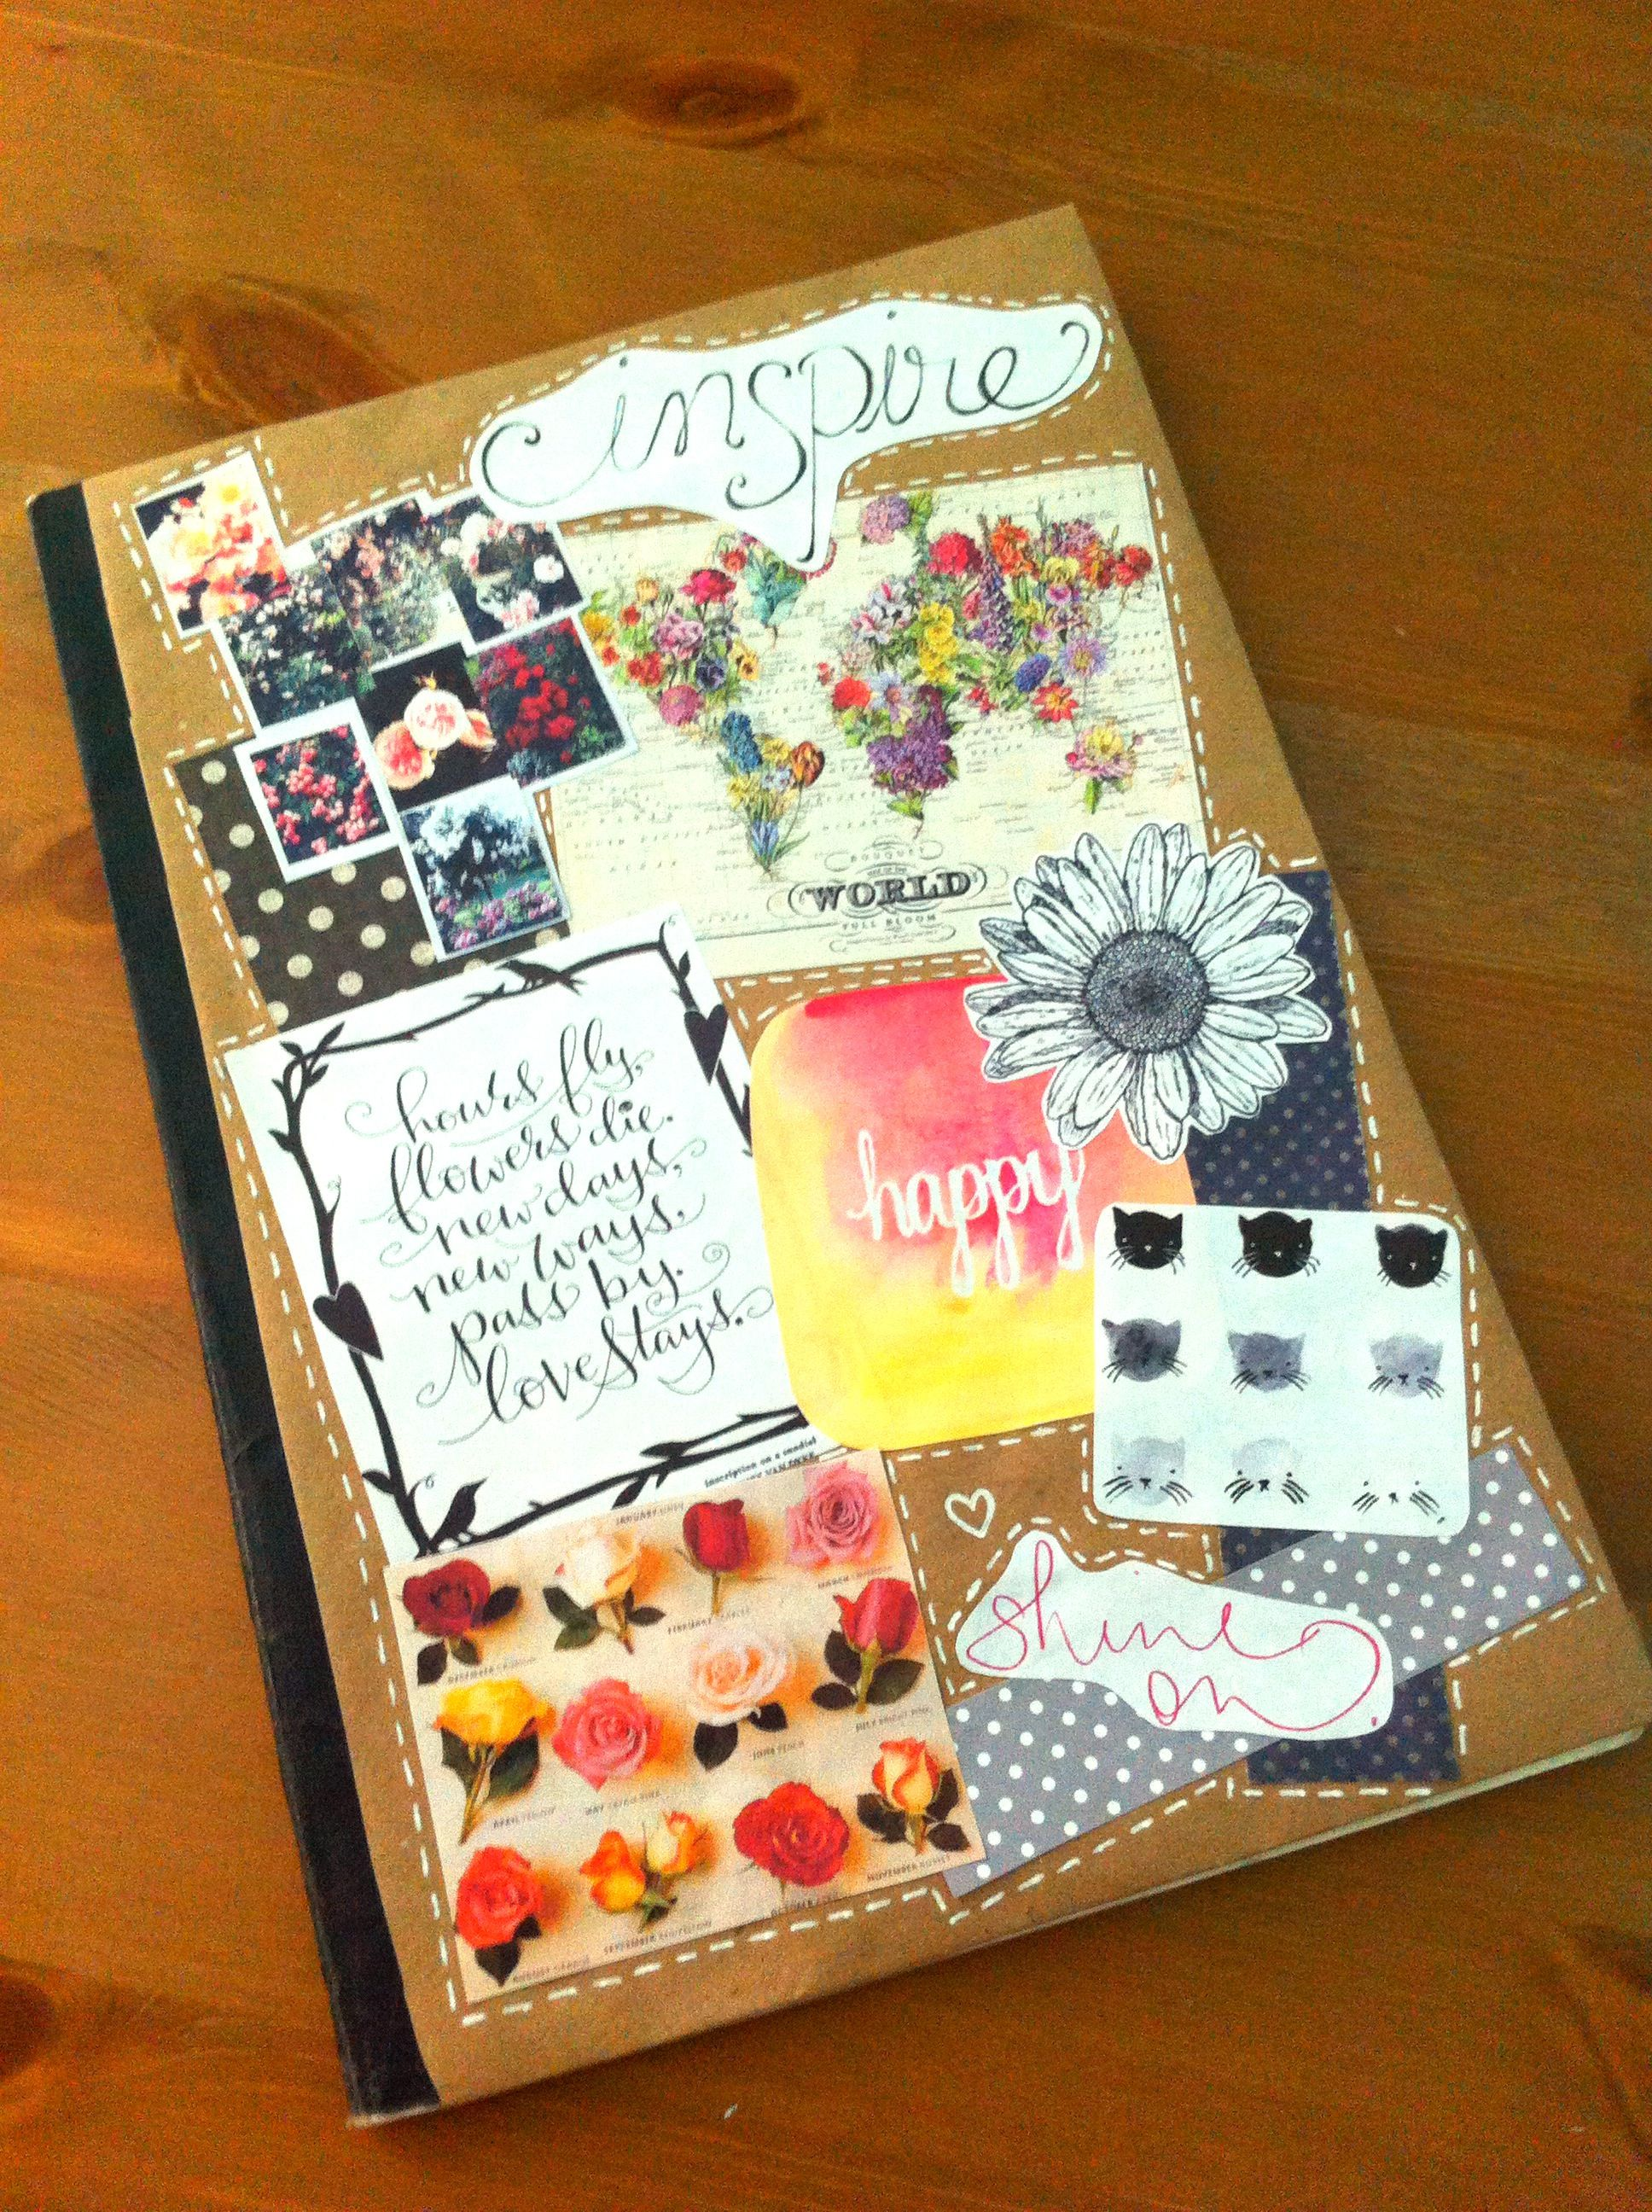 Wallpaper diy wedding journal of computer high resolution collage cover crafts